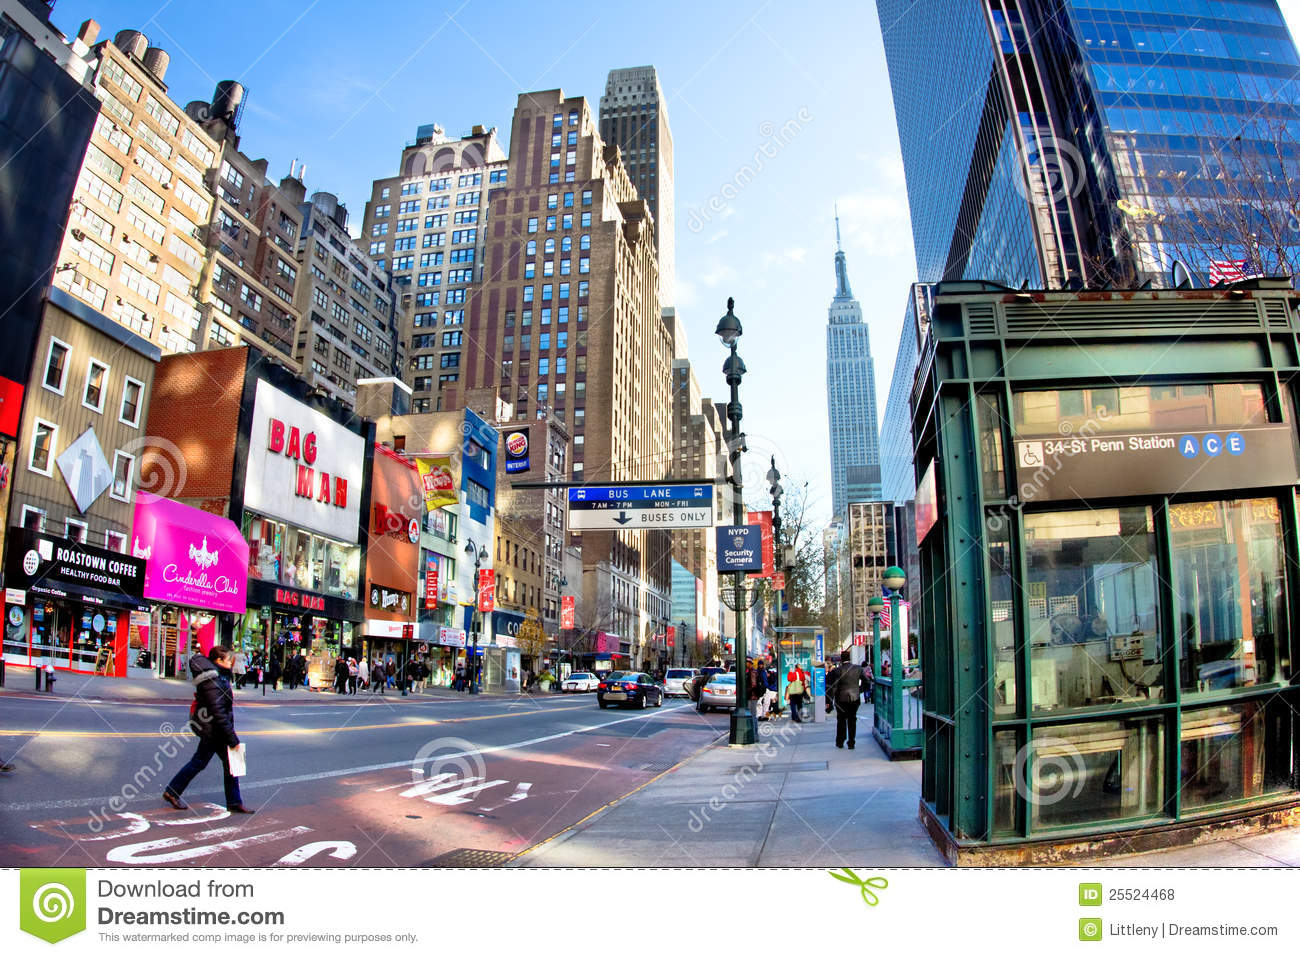 Sep 04, · 34th Street is one of New York City's main shopping areas with chain stores lining both shinobitech.cf the home of Macys Herald Square, which will always be a party of reminding us of the Miracle on 34th Street.4/4(51).